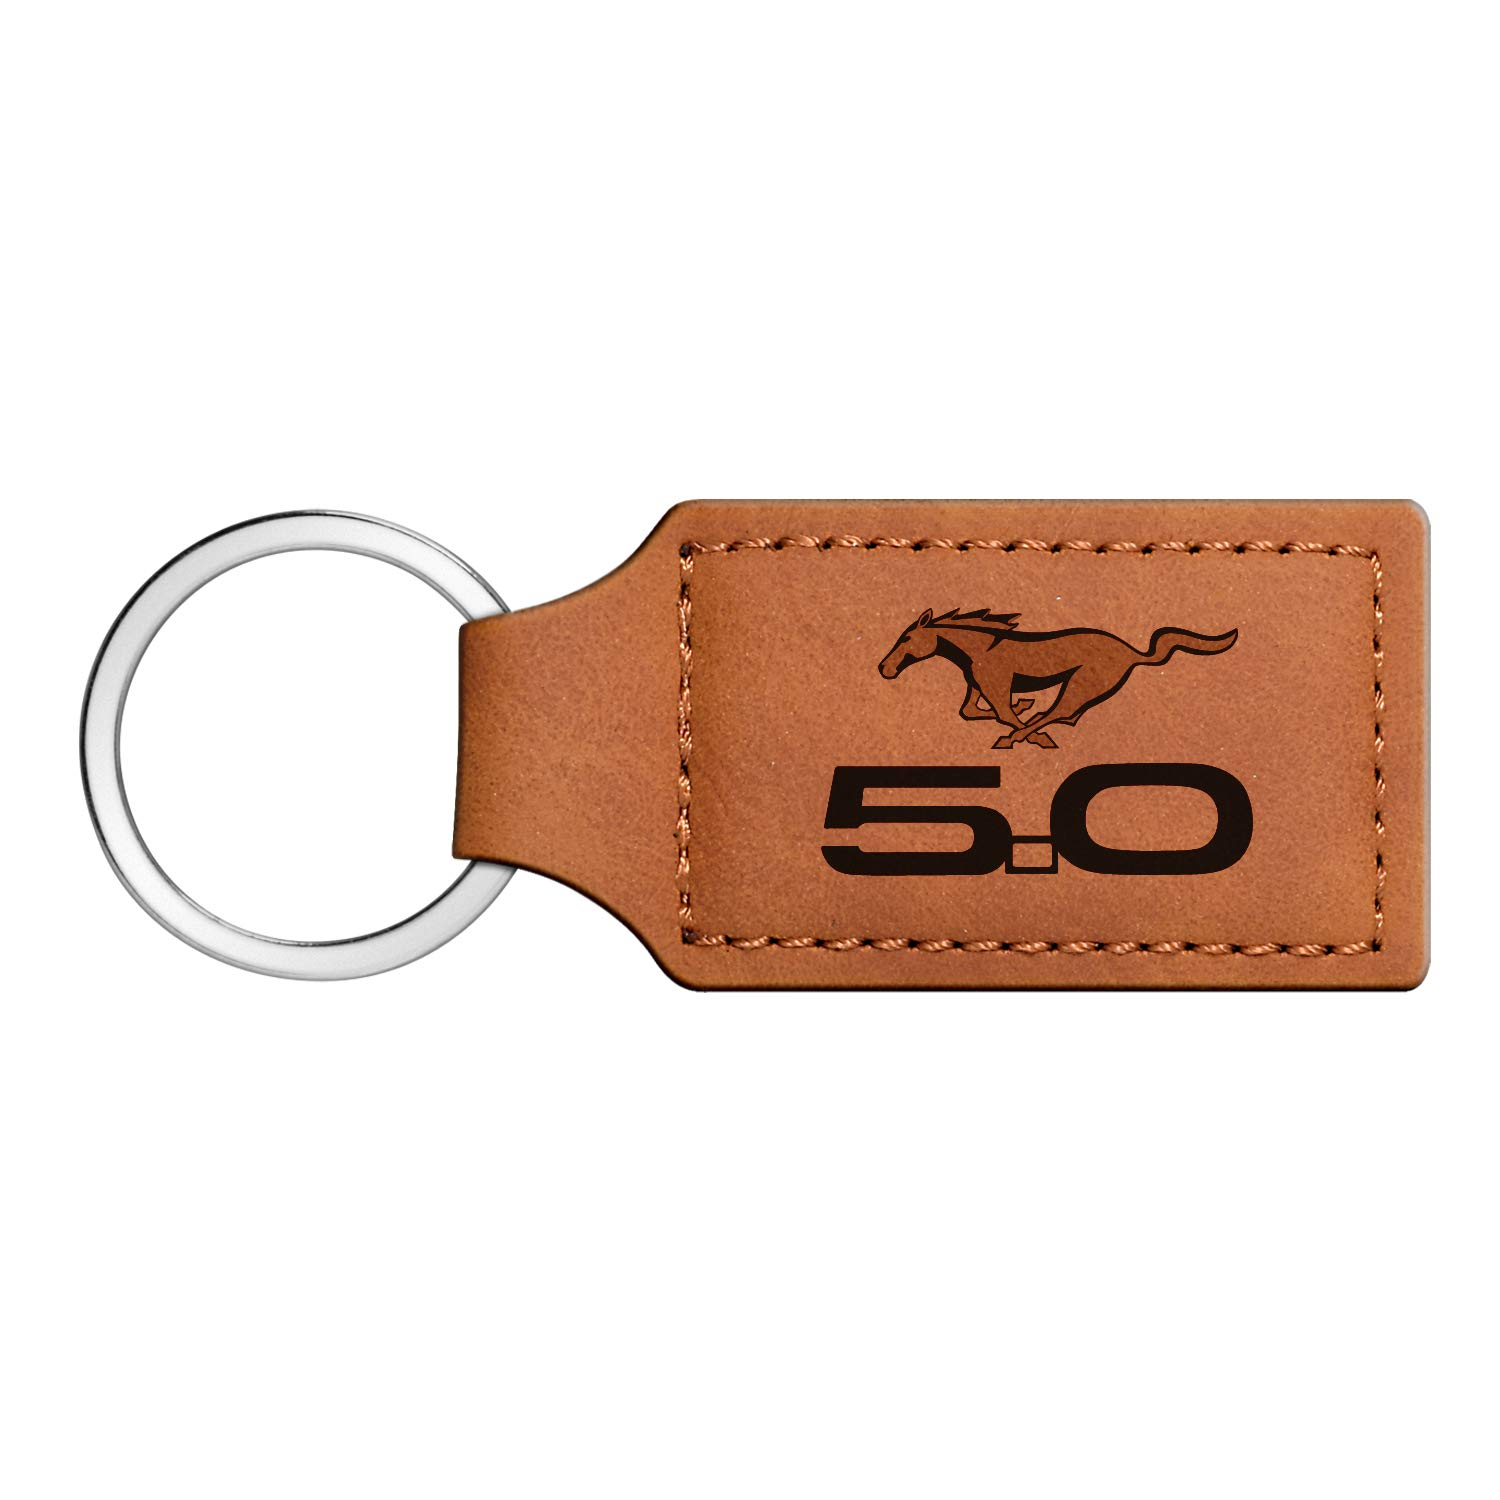 Mustang 5.0 Ford Rectangular Brown Leather Key Chain iPick Image